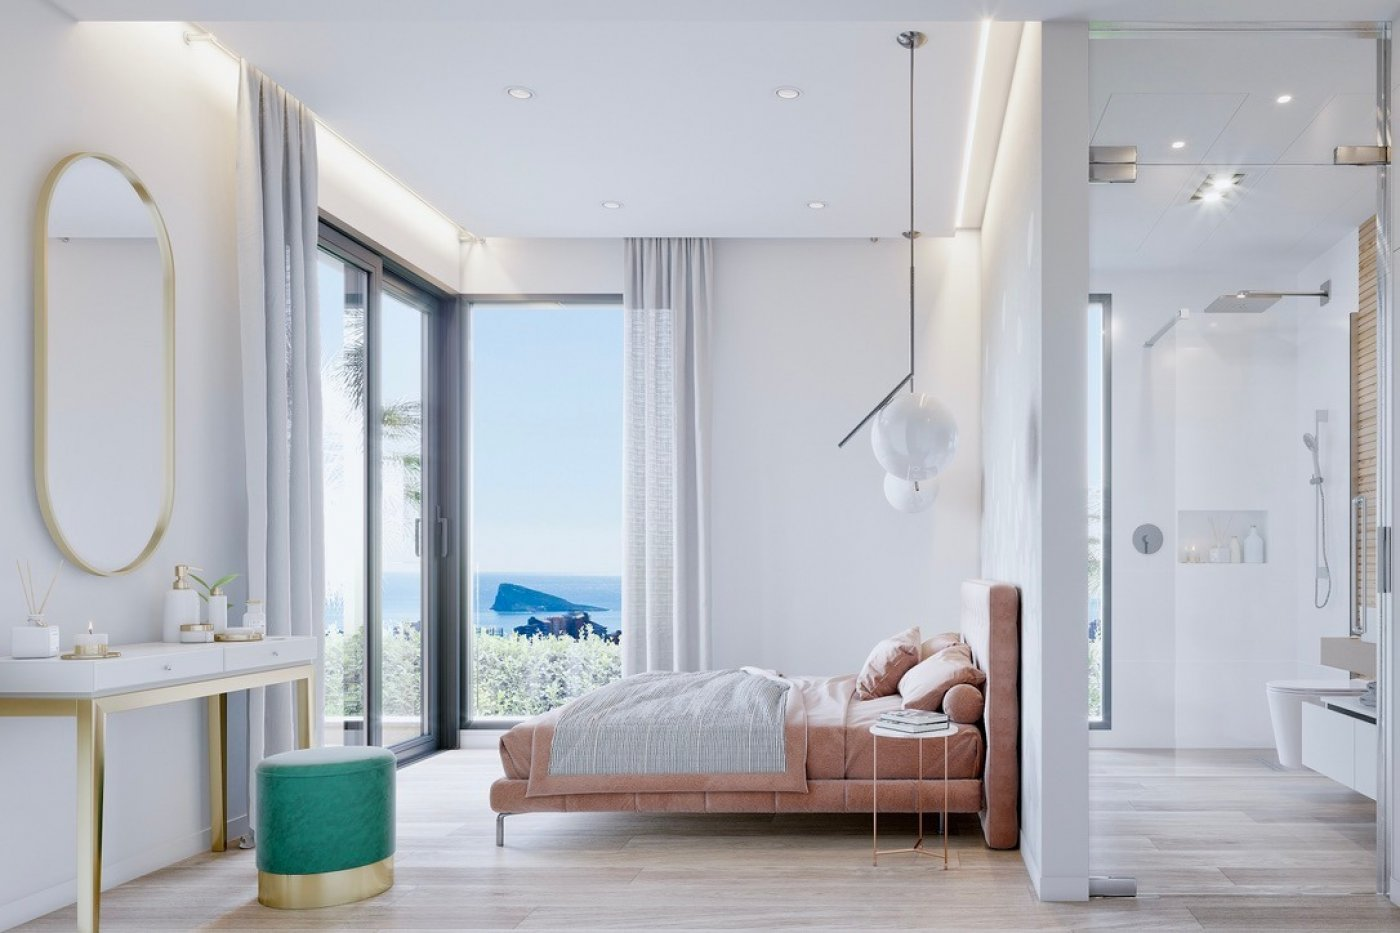 Gallery Image 7 of Luxury villa in Finestrat fantastic views over Benidorm, southwest facing - own pool, large basement